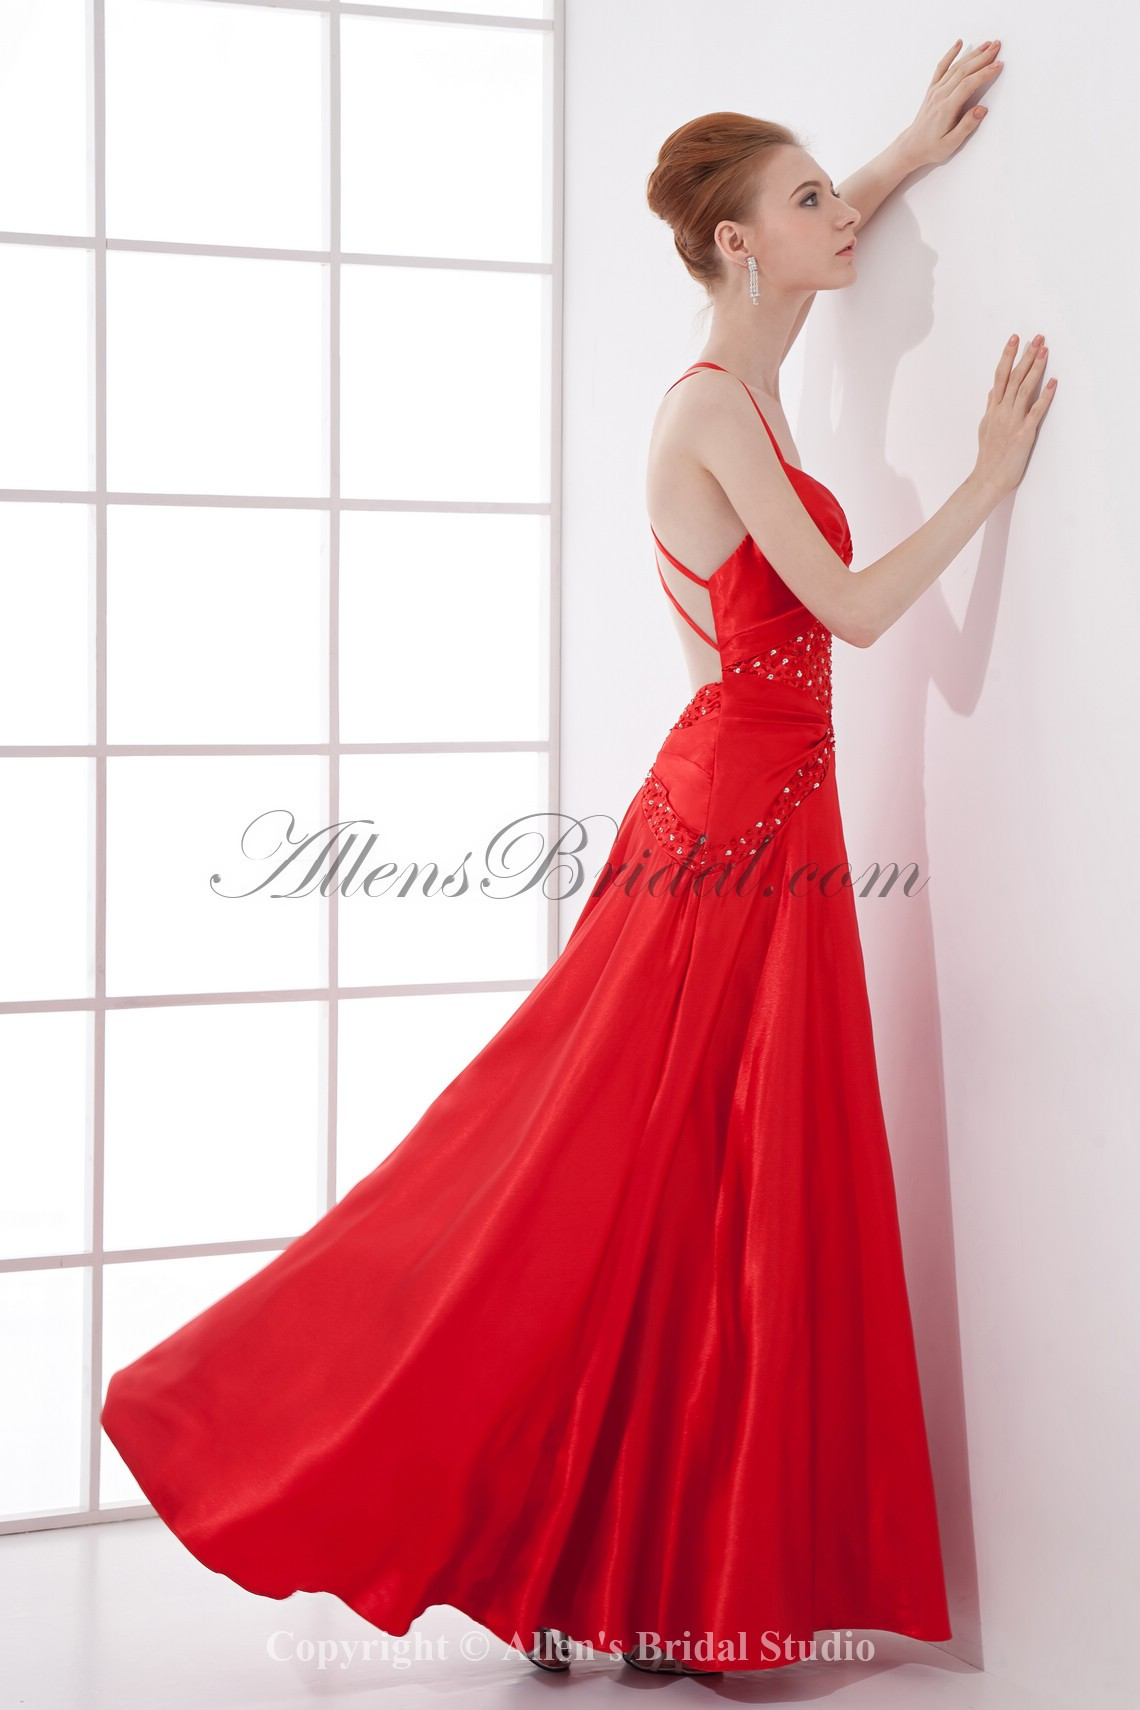 /72-571/satin-spaghetti-neckline-a-line-ankle-length-sequins-prom-dress.jpg